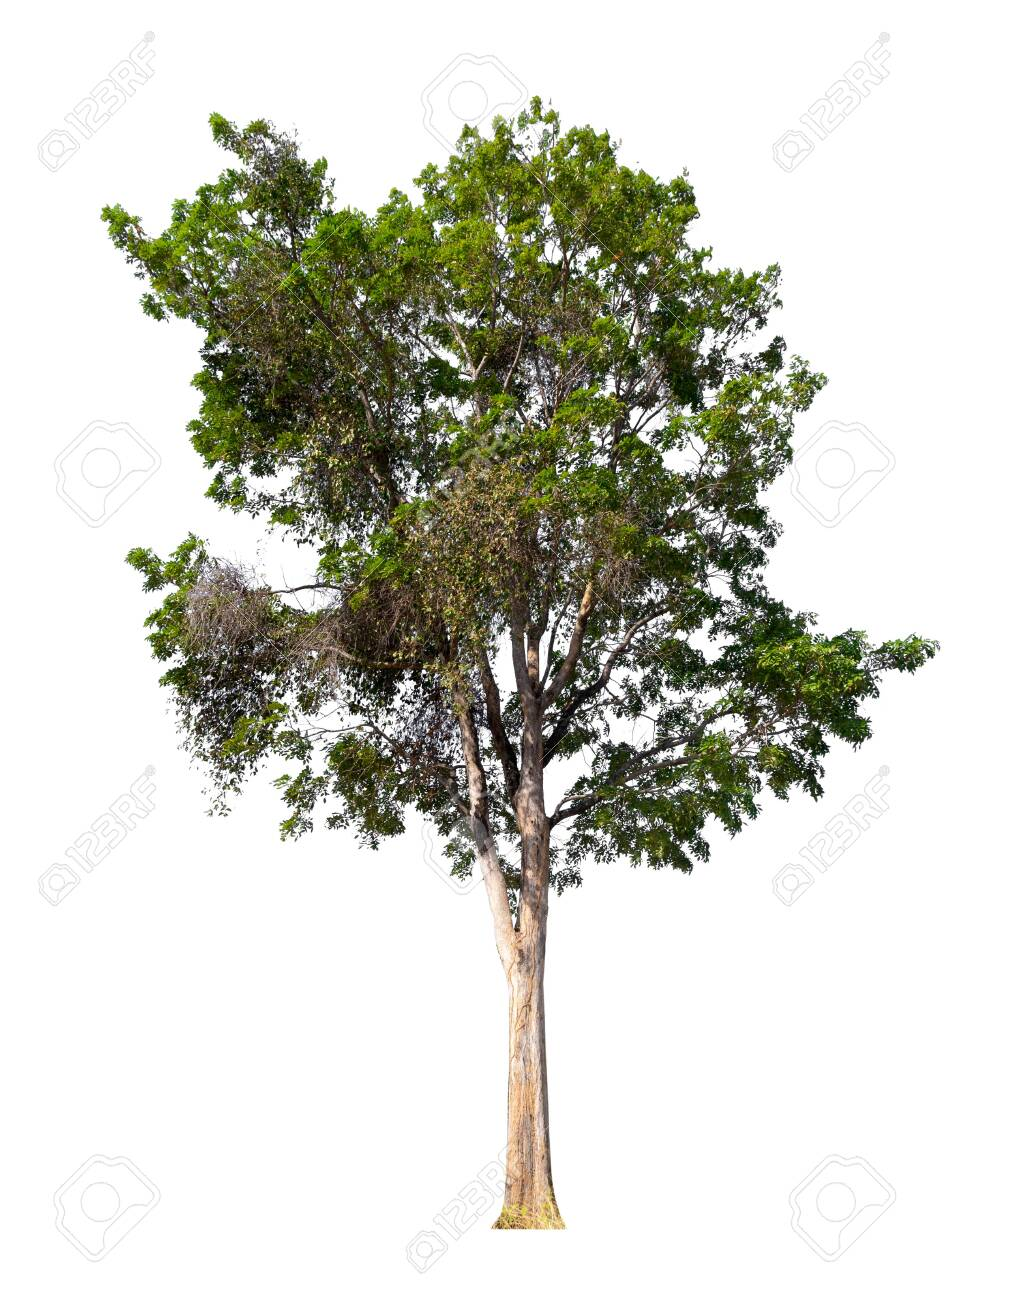 isolated tree on white background with clipping path - 140933574